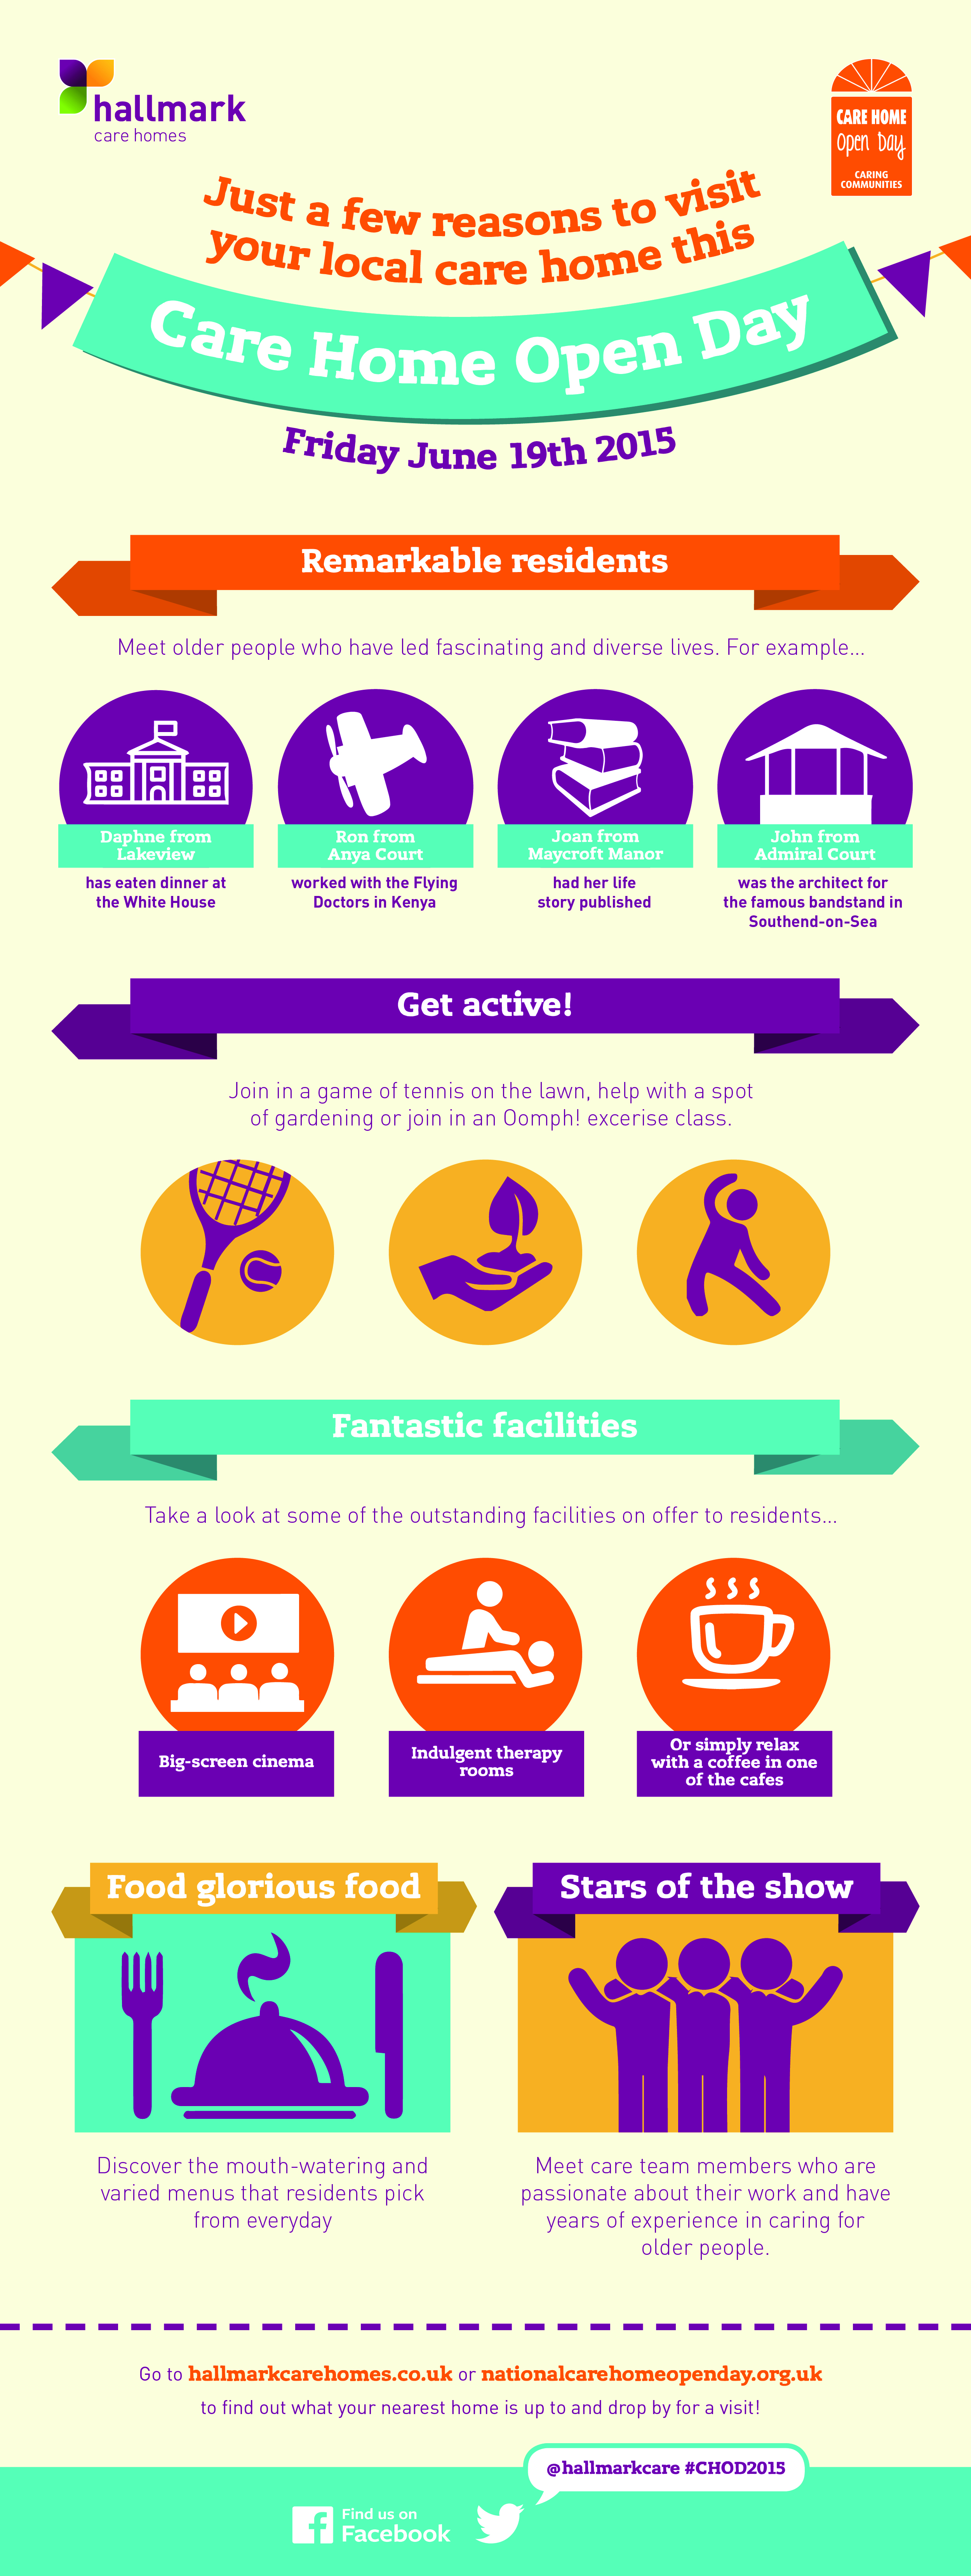 Care Home Open Day Infographic